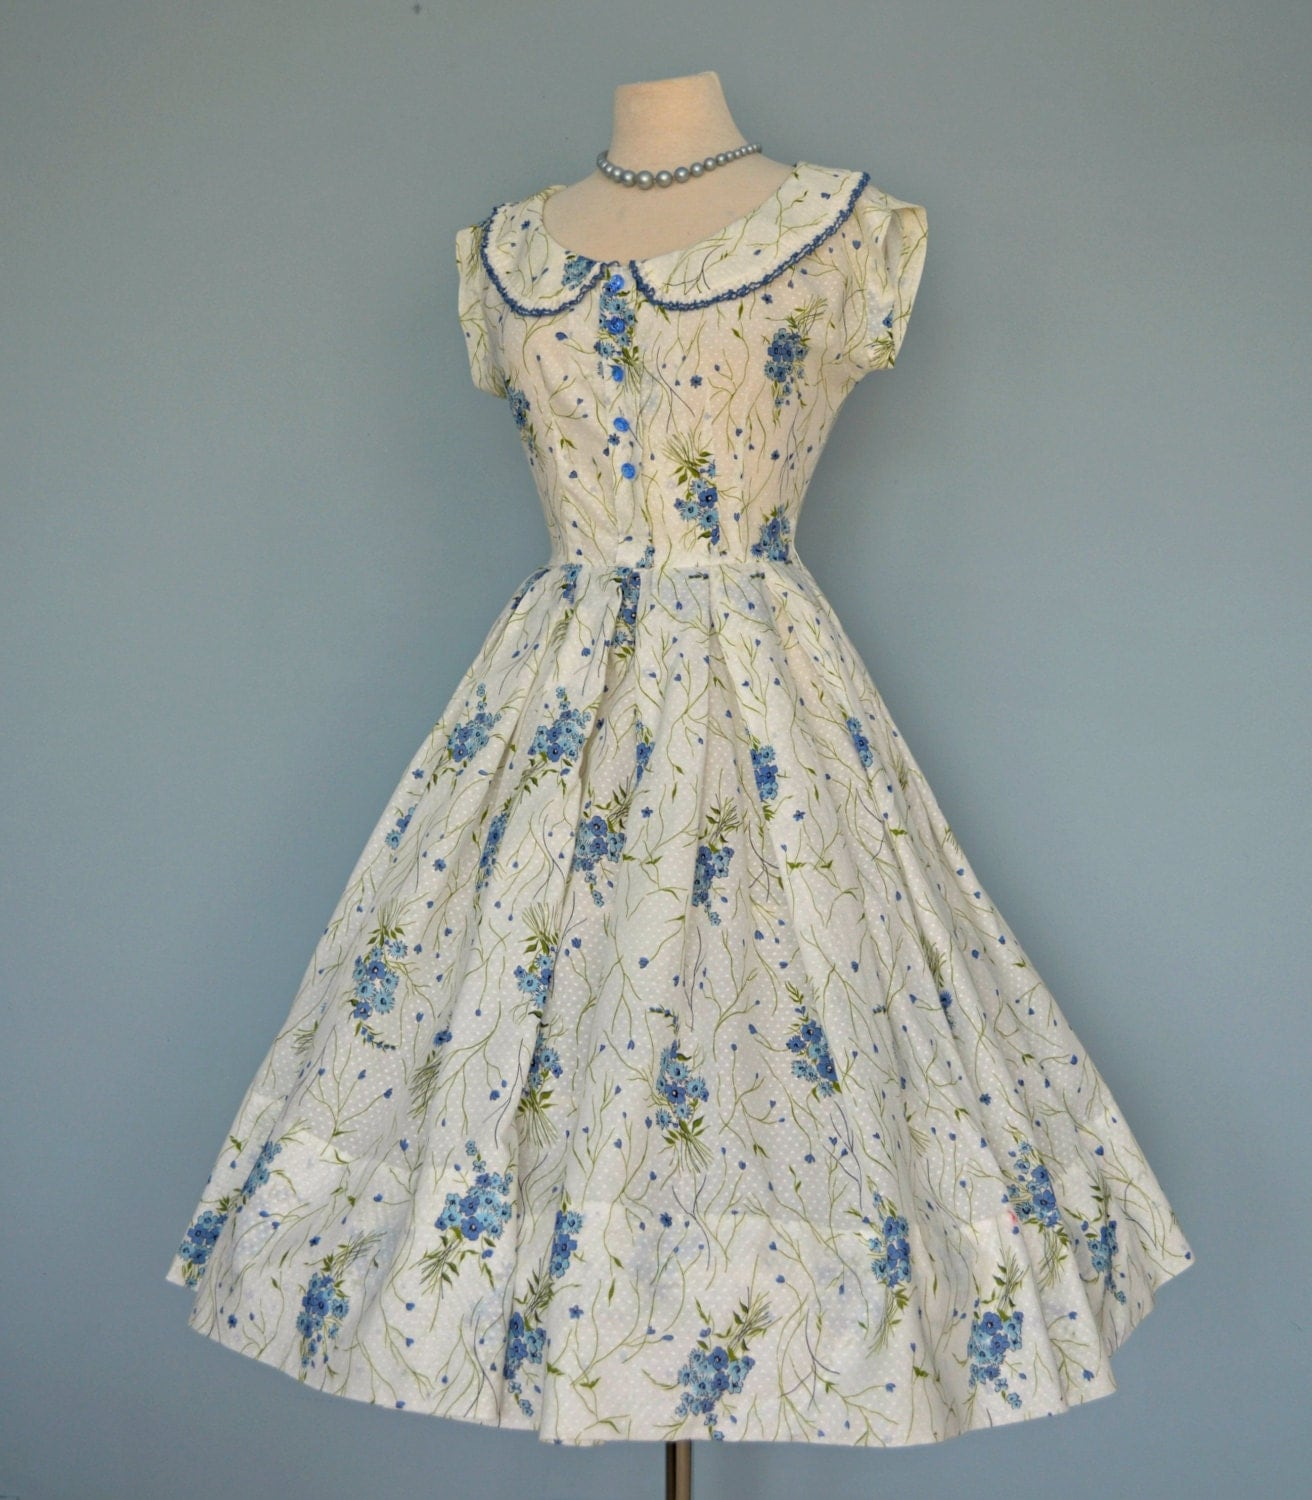 Vintage 1950s Party Dress...Darling Cotton Blue and White